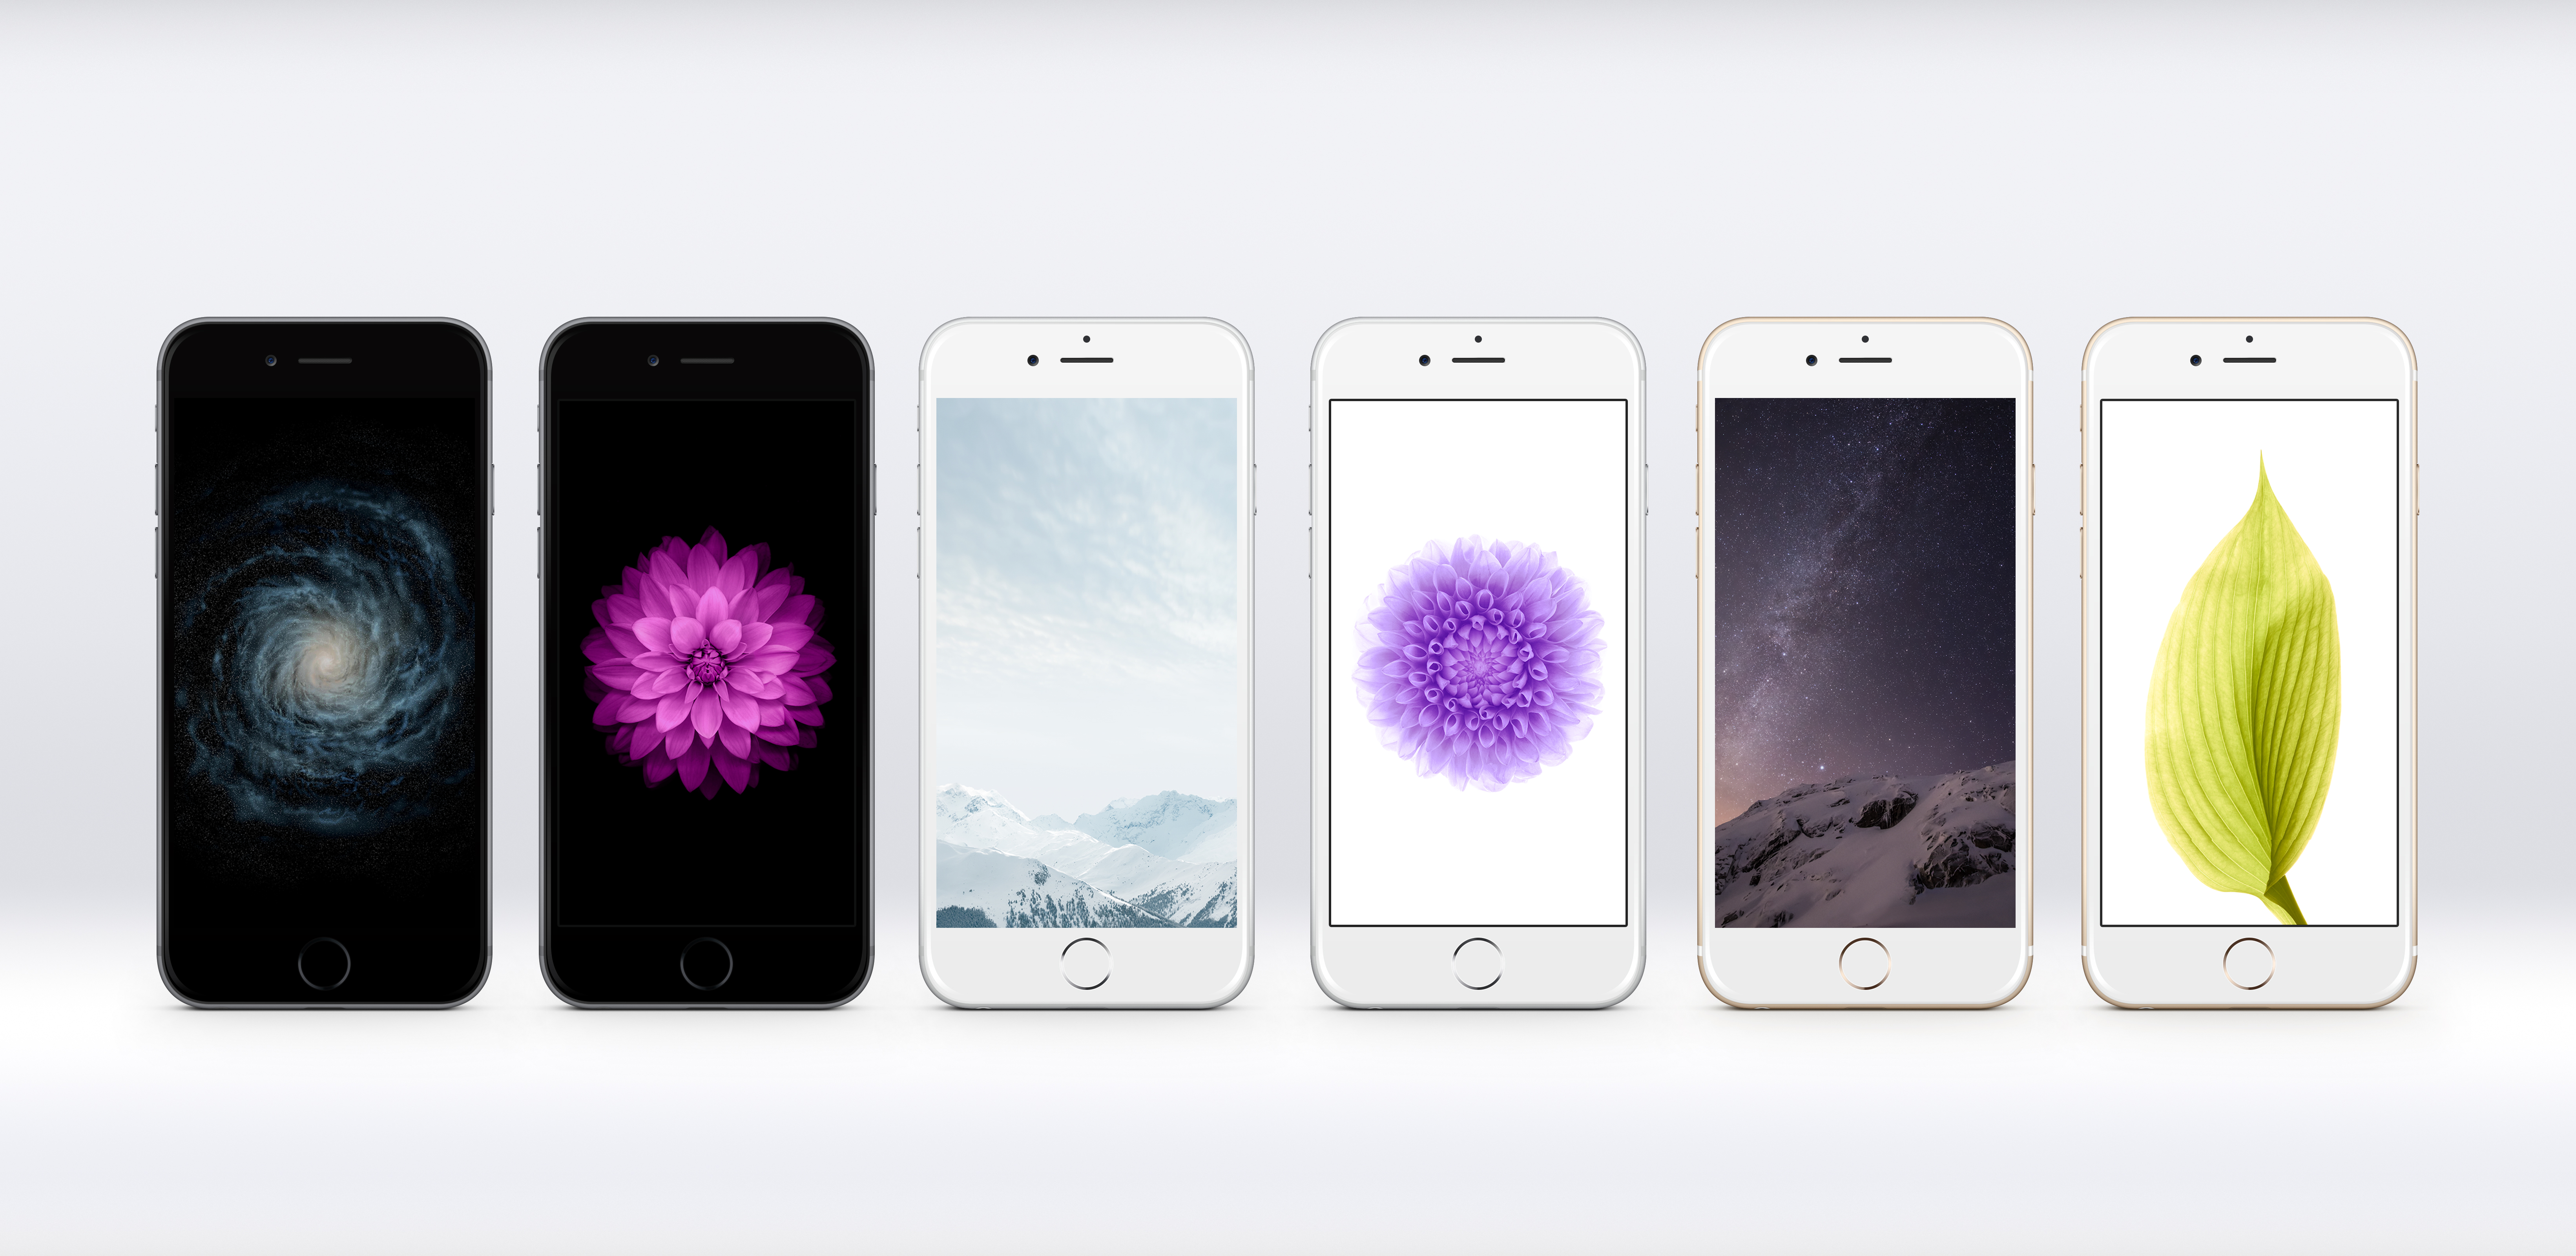 iOS 8 GM Wallpapers